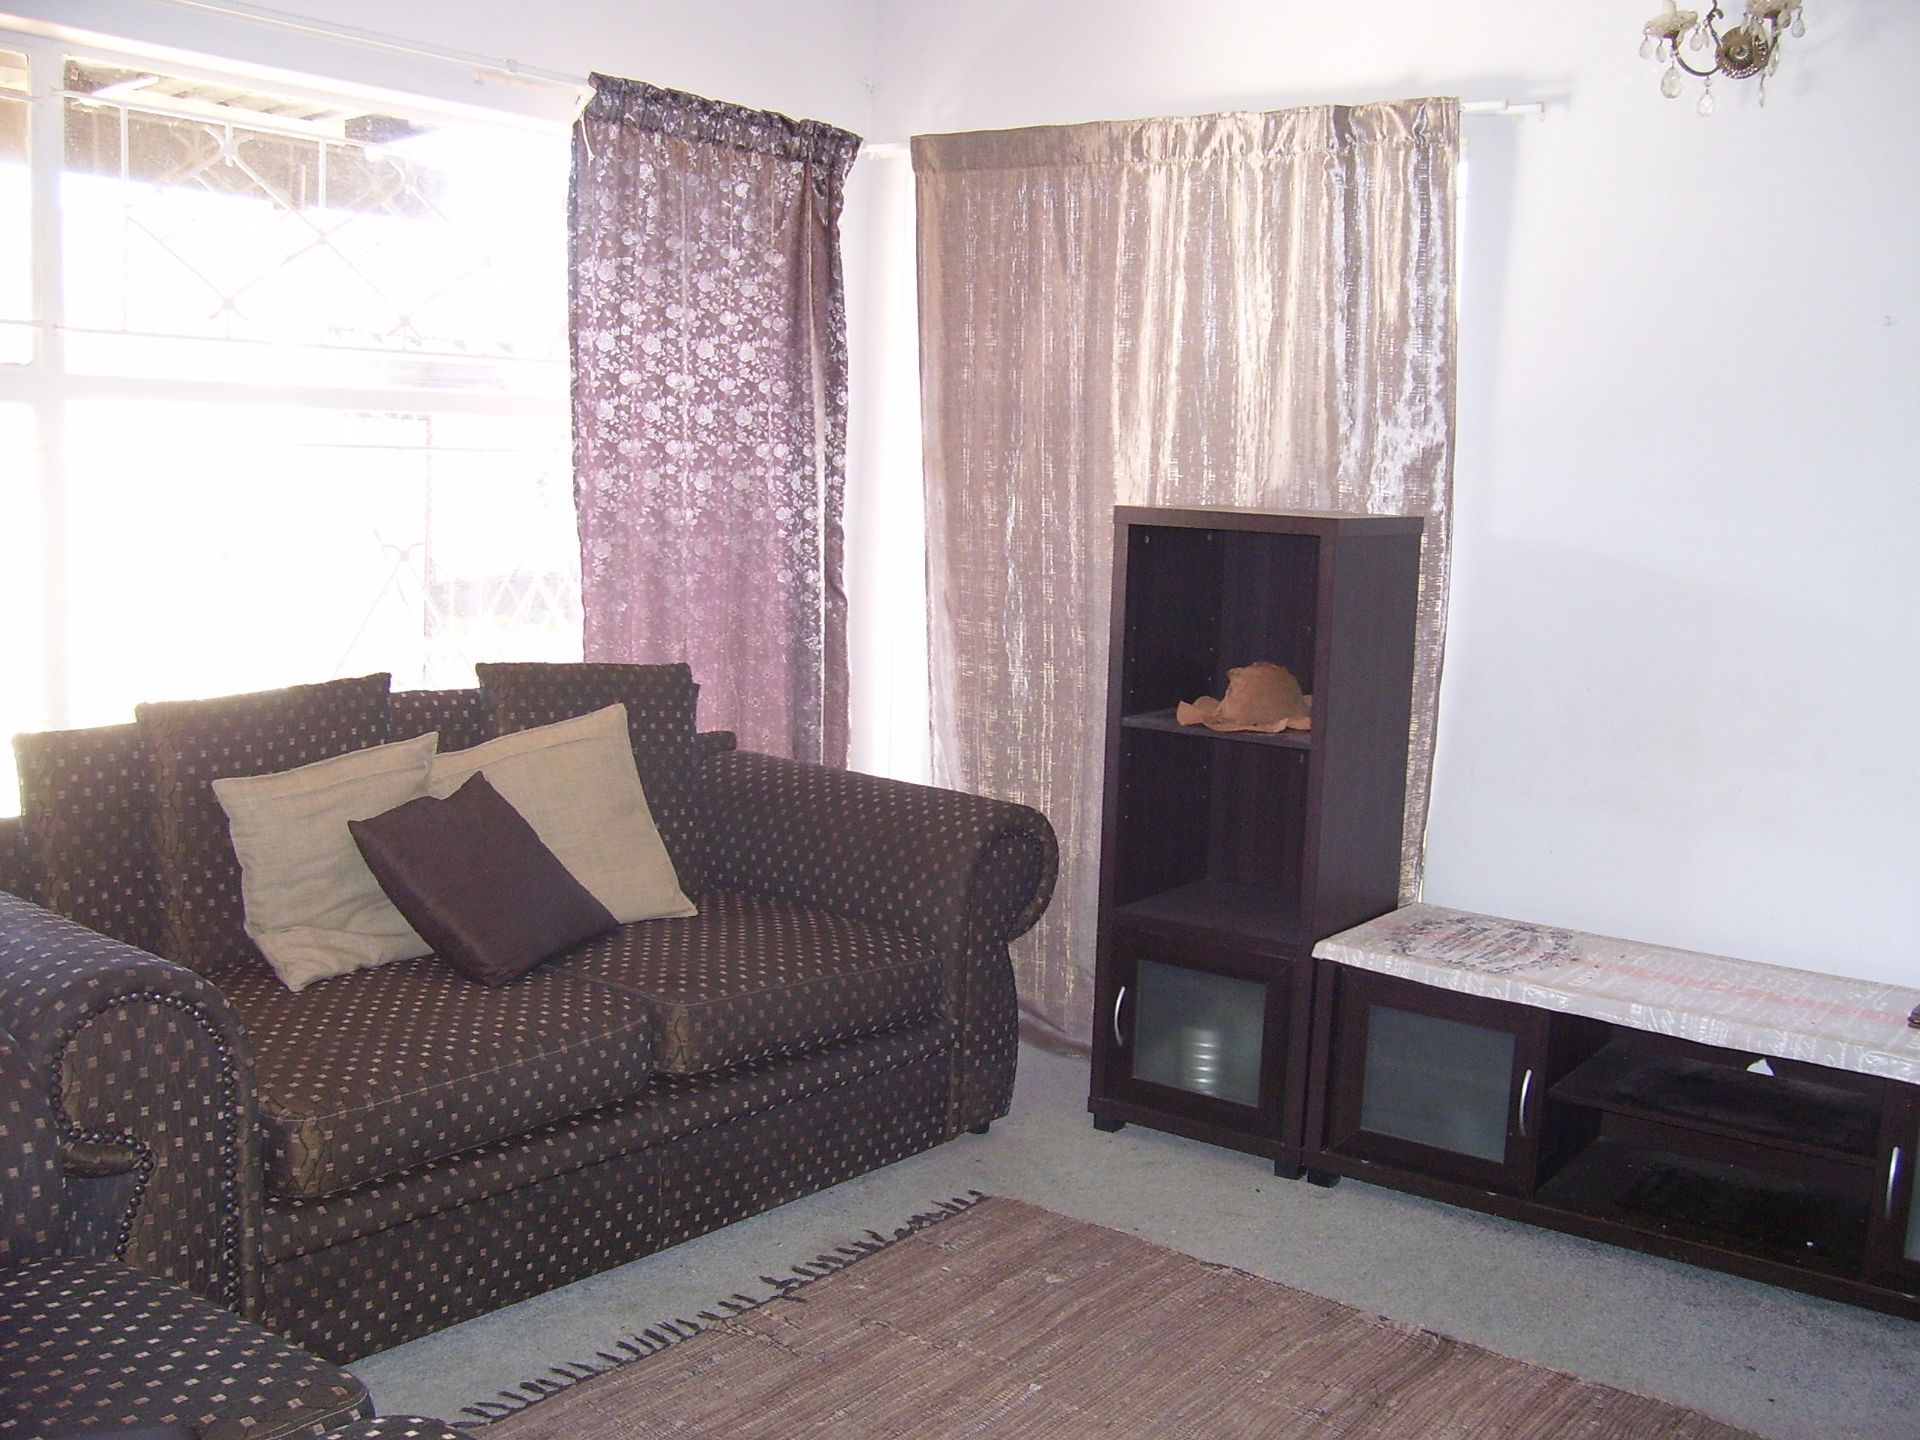 Suid Dorp property for sale. Ref No: 13503270. Picture no 10